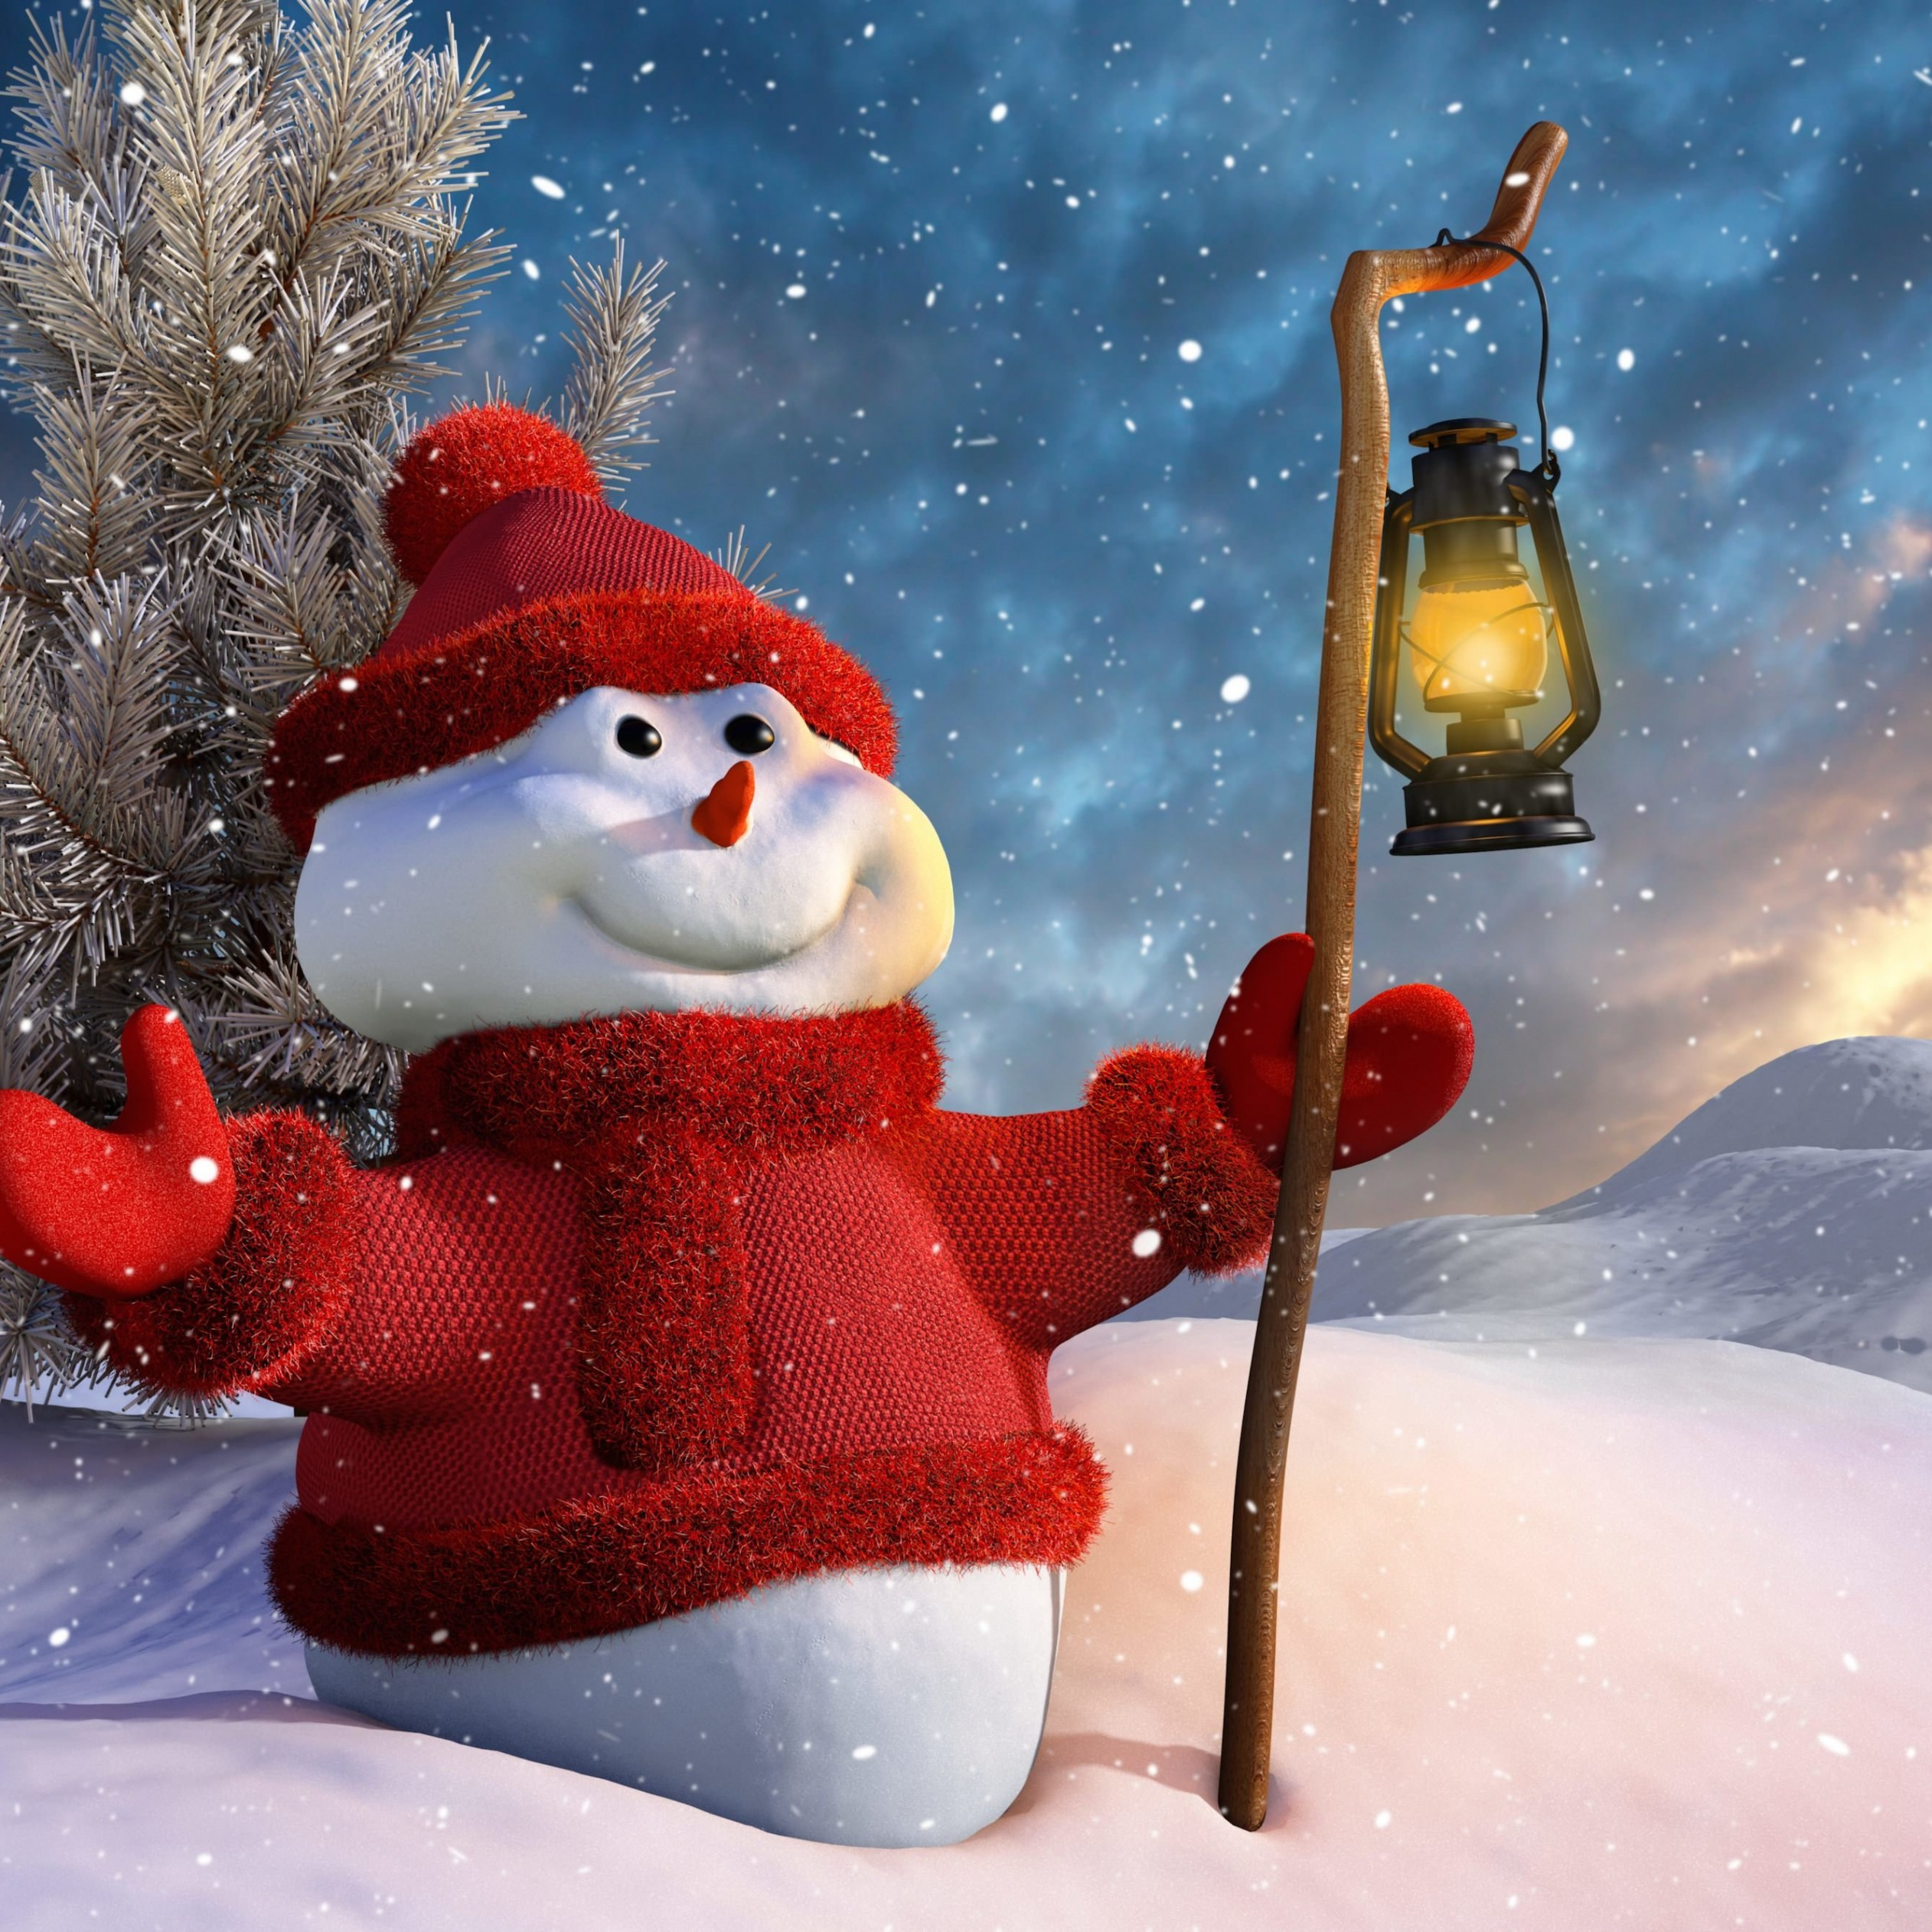 Christmas Snowman Wallpaper for Apple iPad mini 2